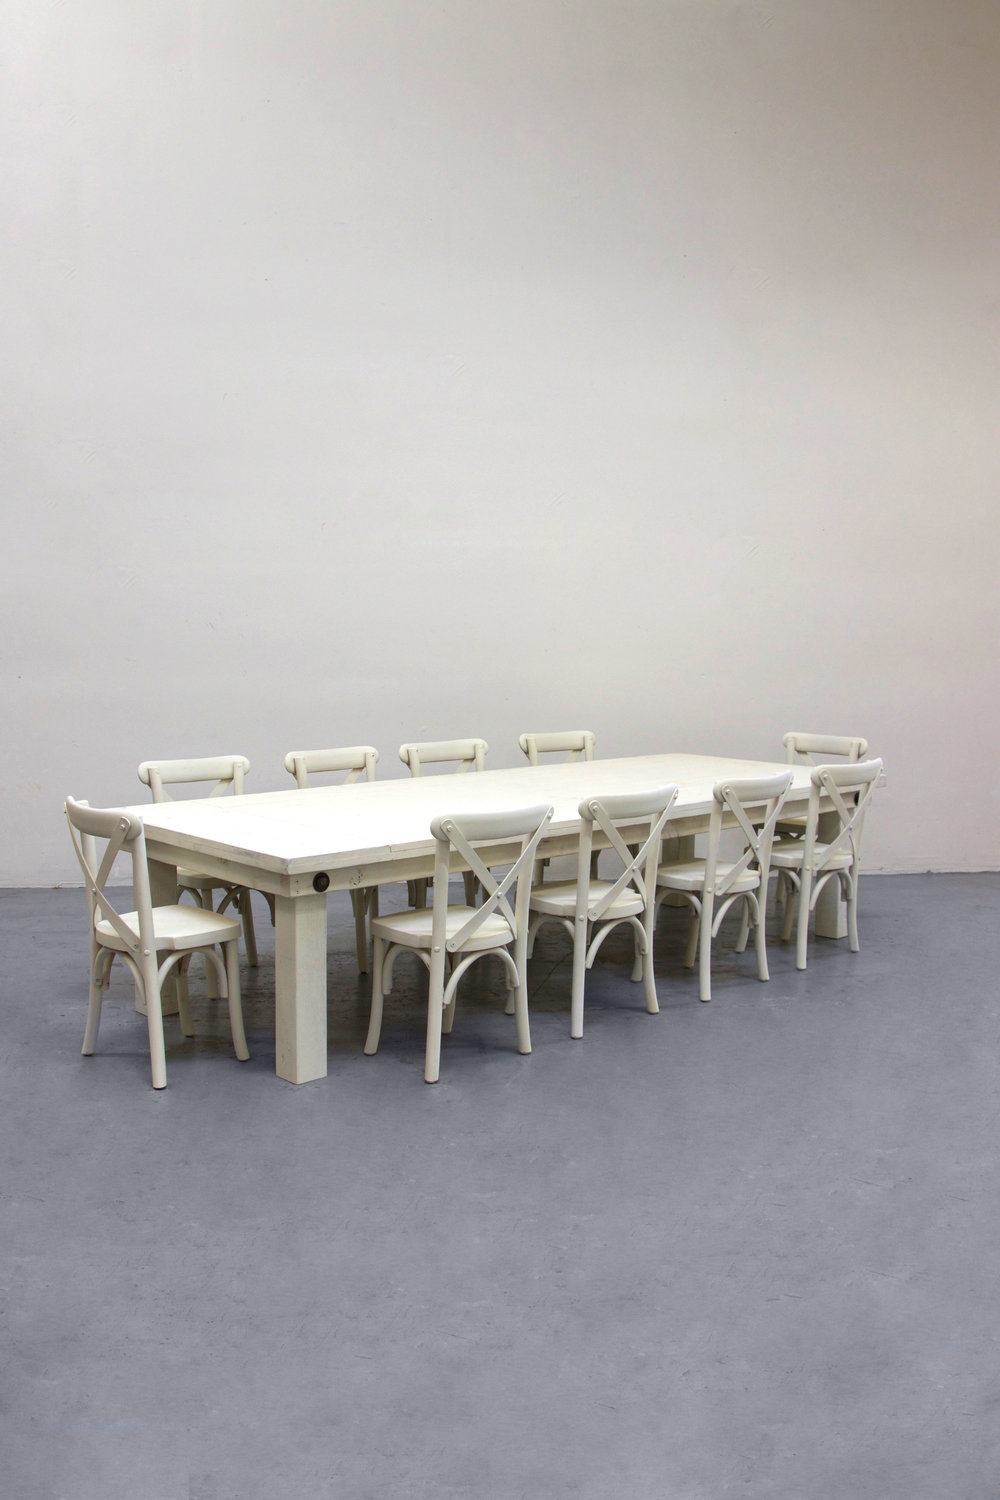 $140 1 Kids Vintage White Farm Table w/ 10 Cross-Back Chairs